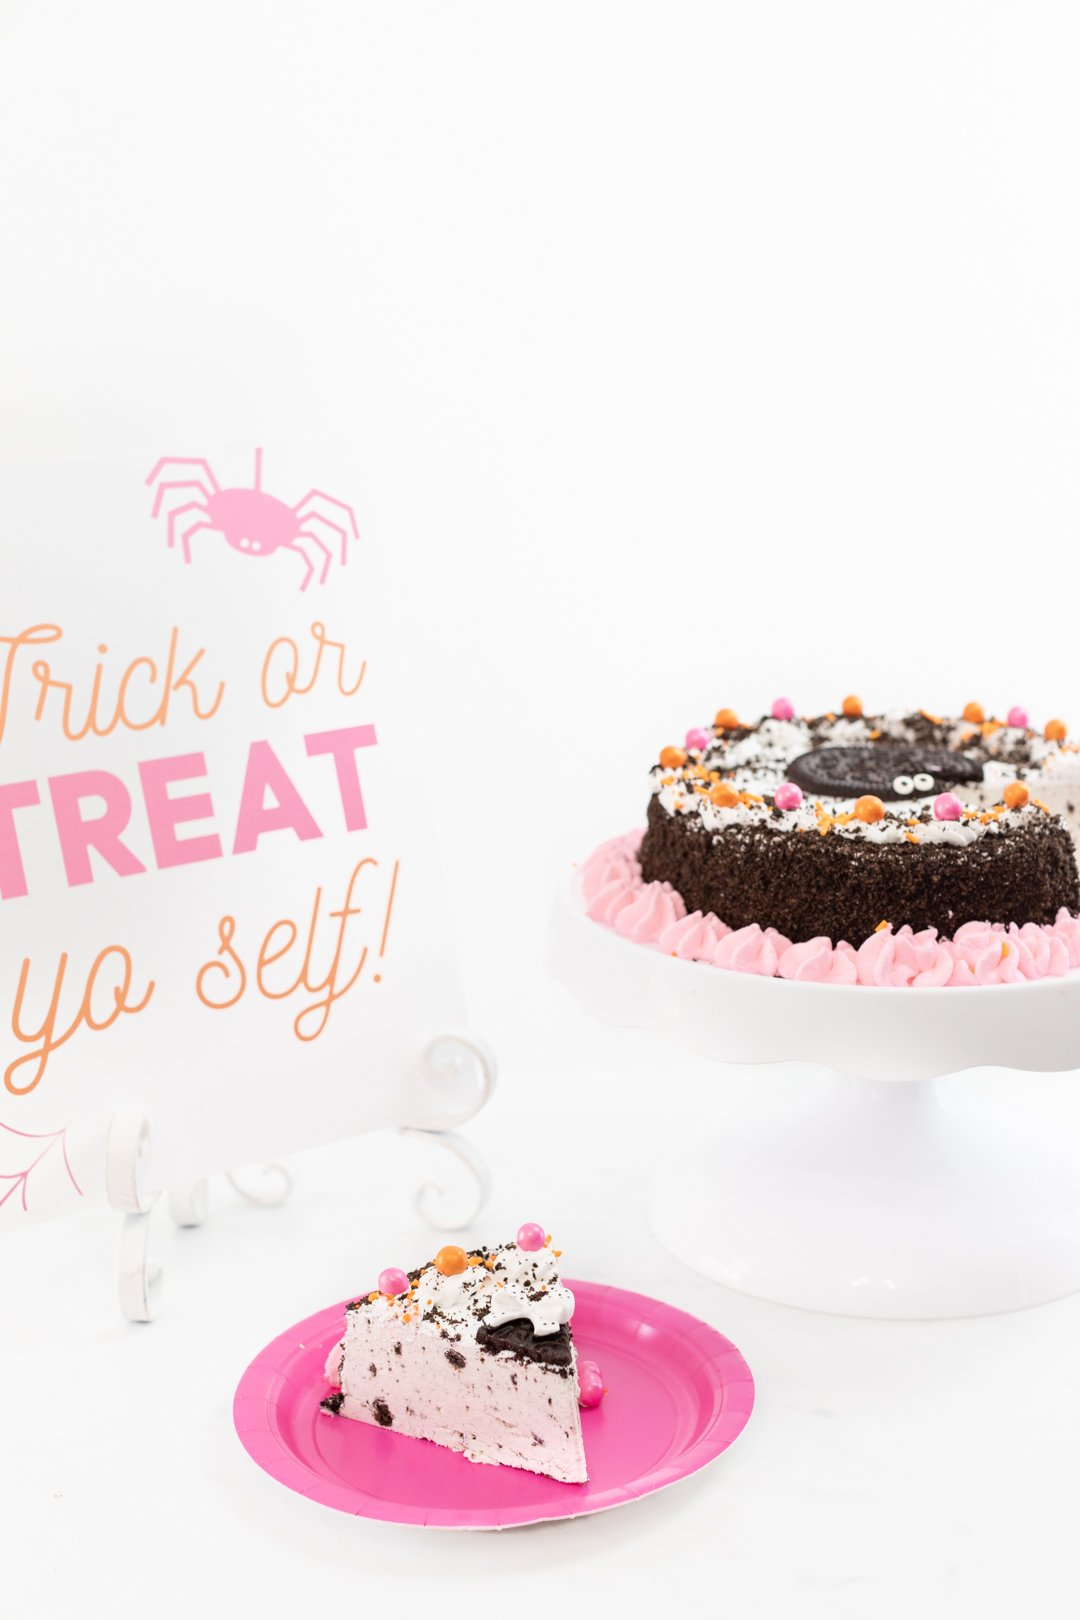 Delish OREO Premium Ice Cream Cake Embellished with pretty pink details for Halloween.